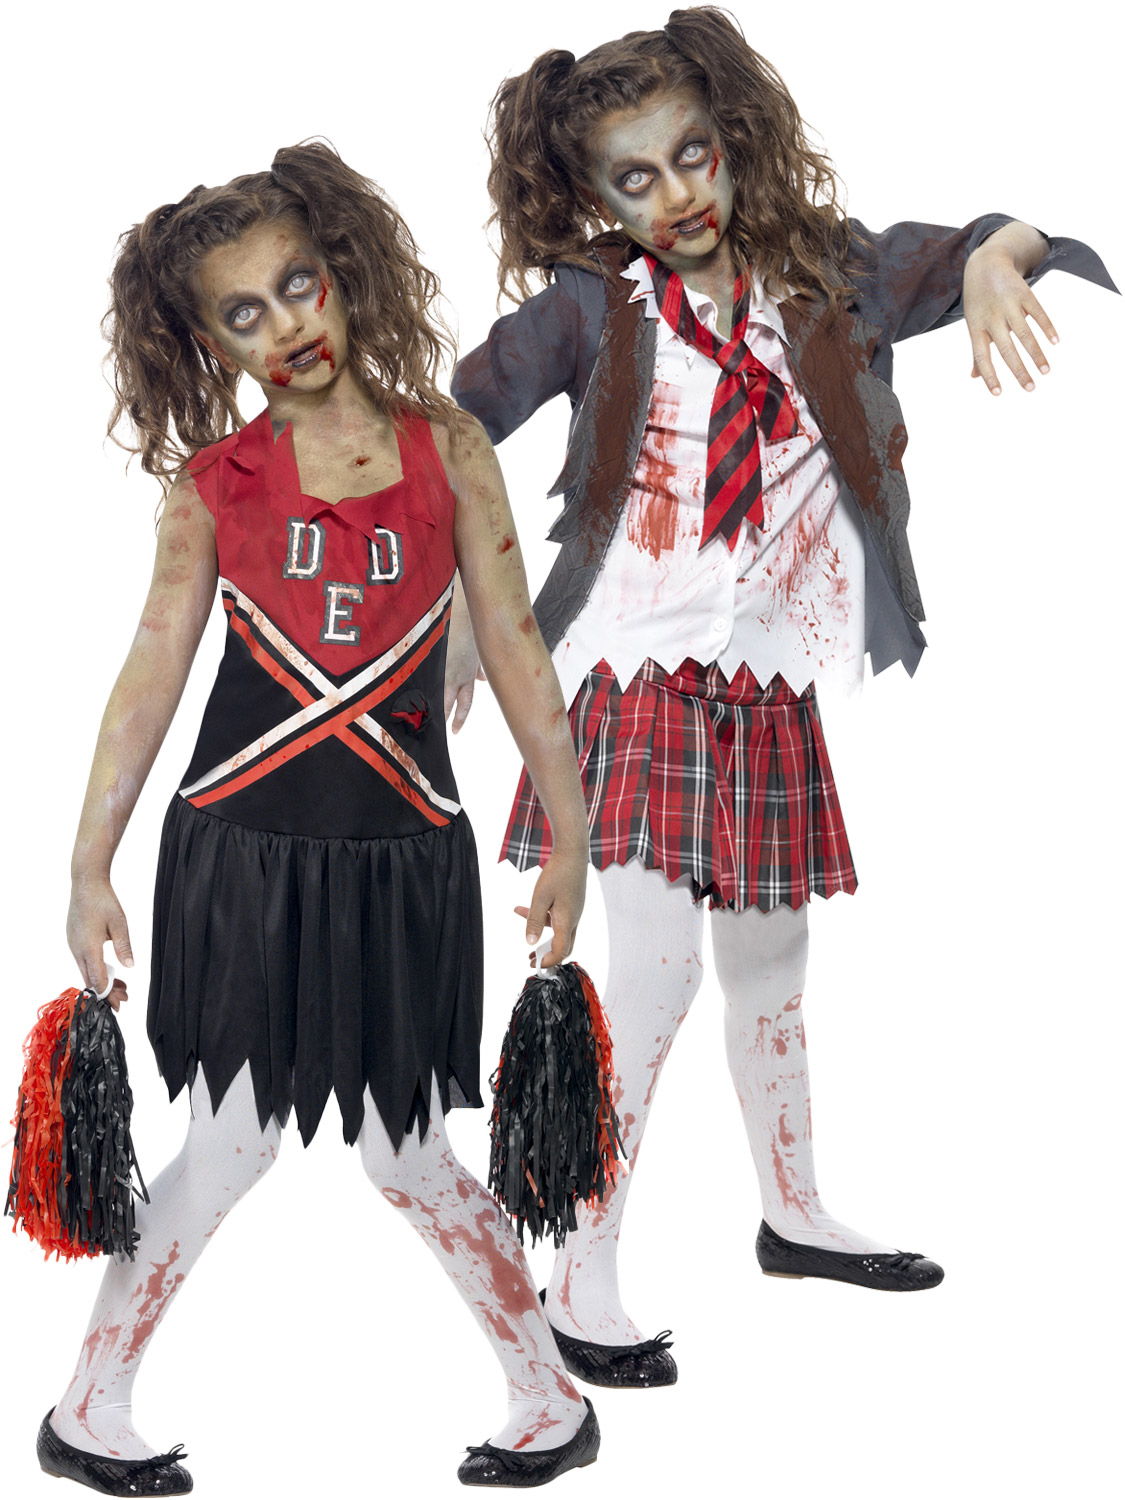 ... Girl Costume Halloween Fancy Dress Party Kids. Image 2  sc 1 st  eBay & Girls Zombie Cheerleader School Girl Costume Halloween Fancy Dress ...